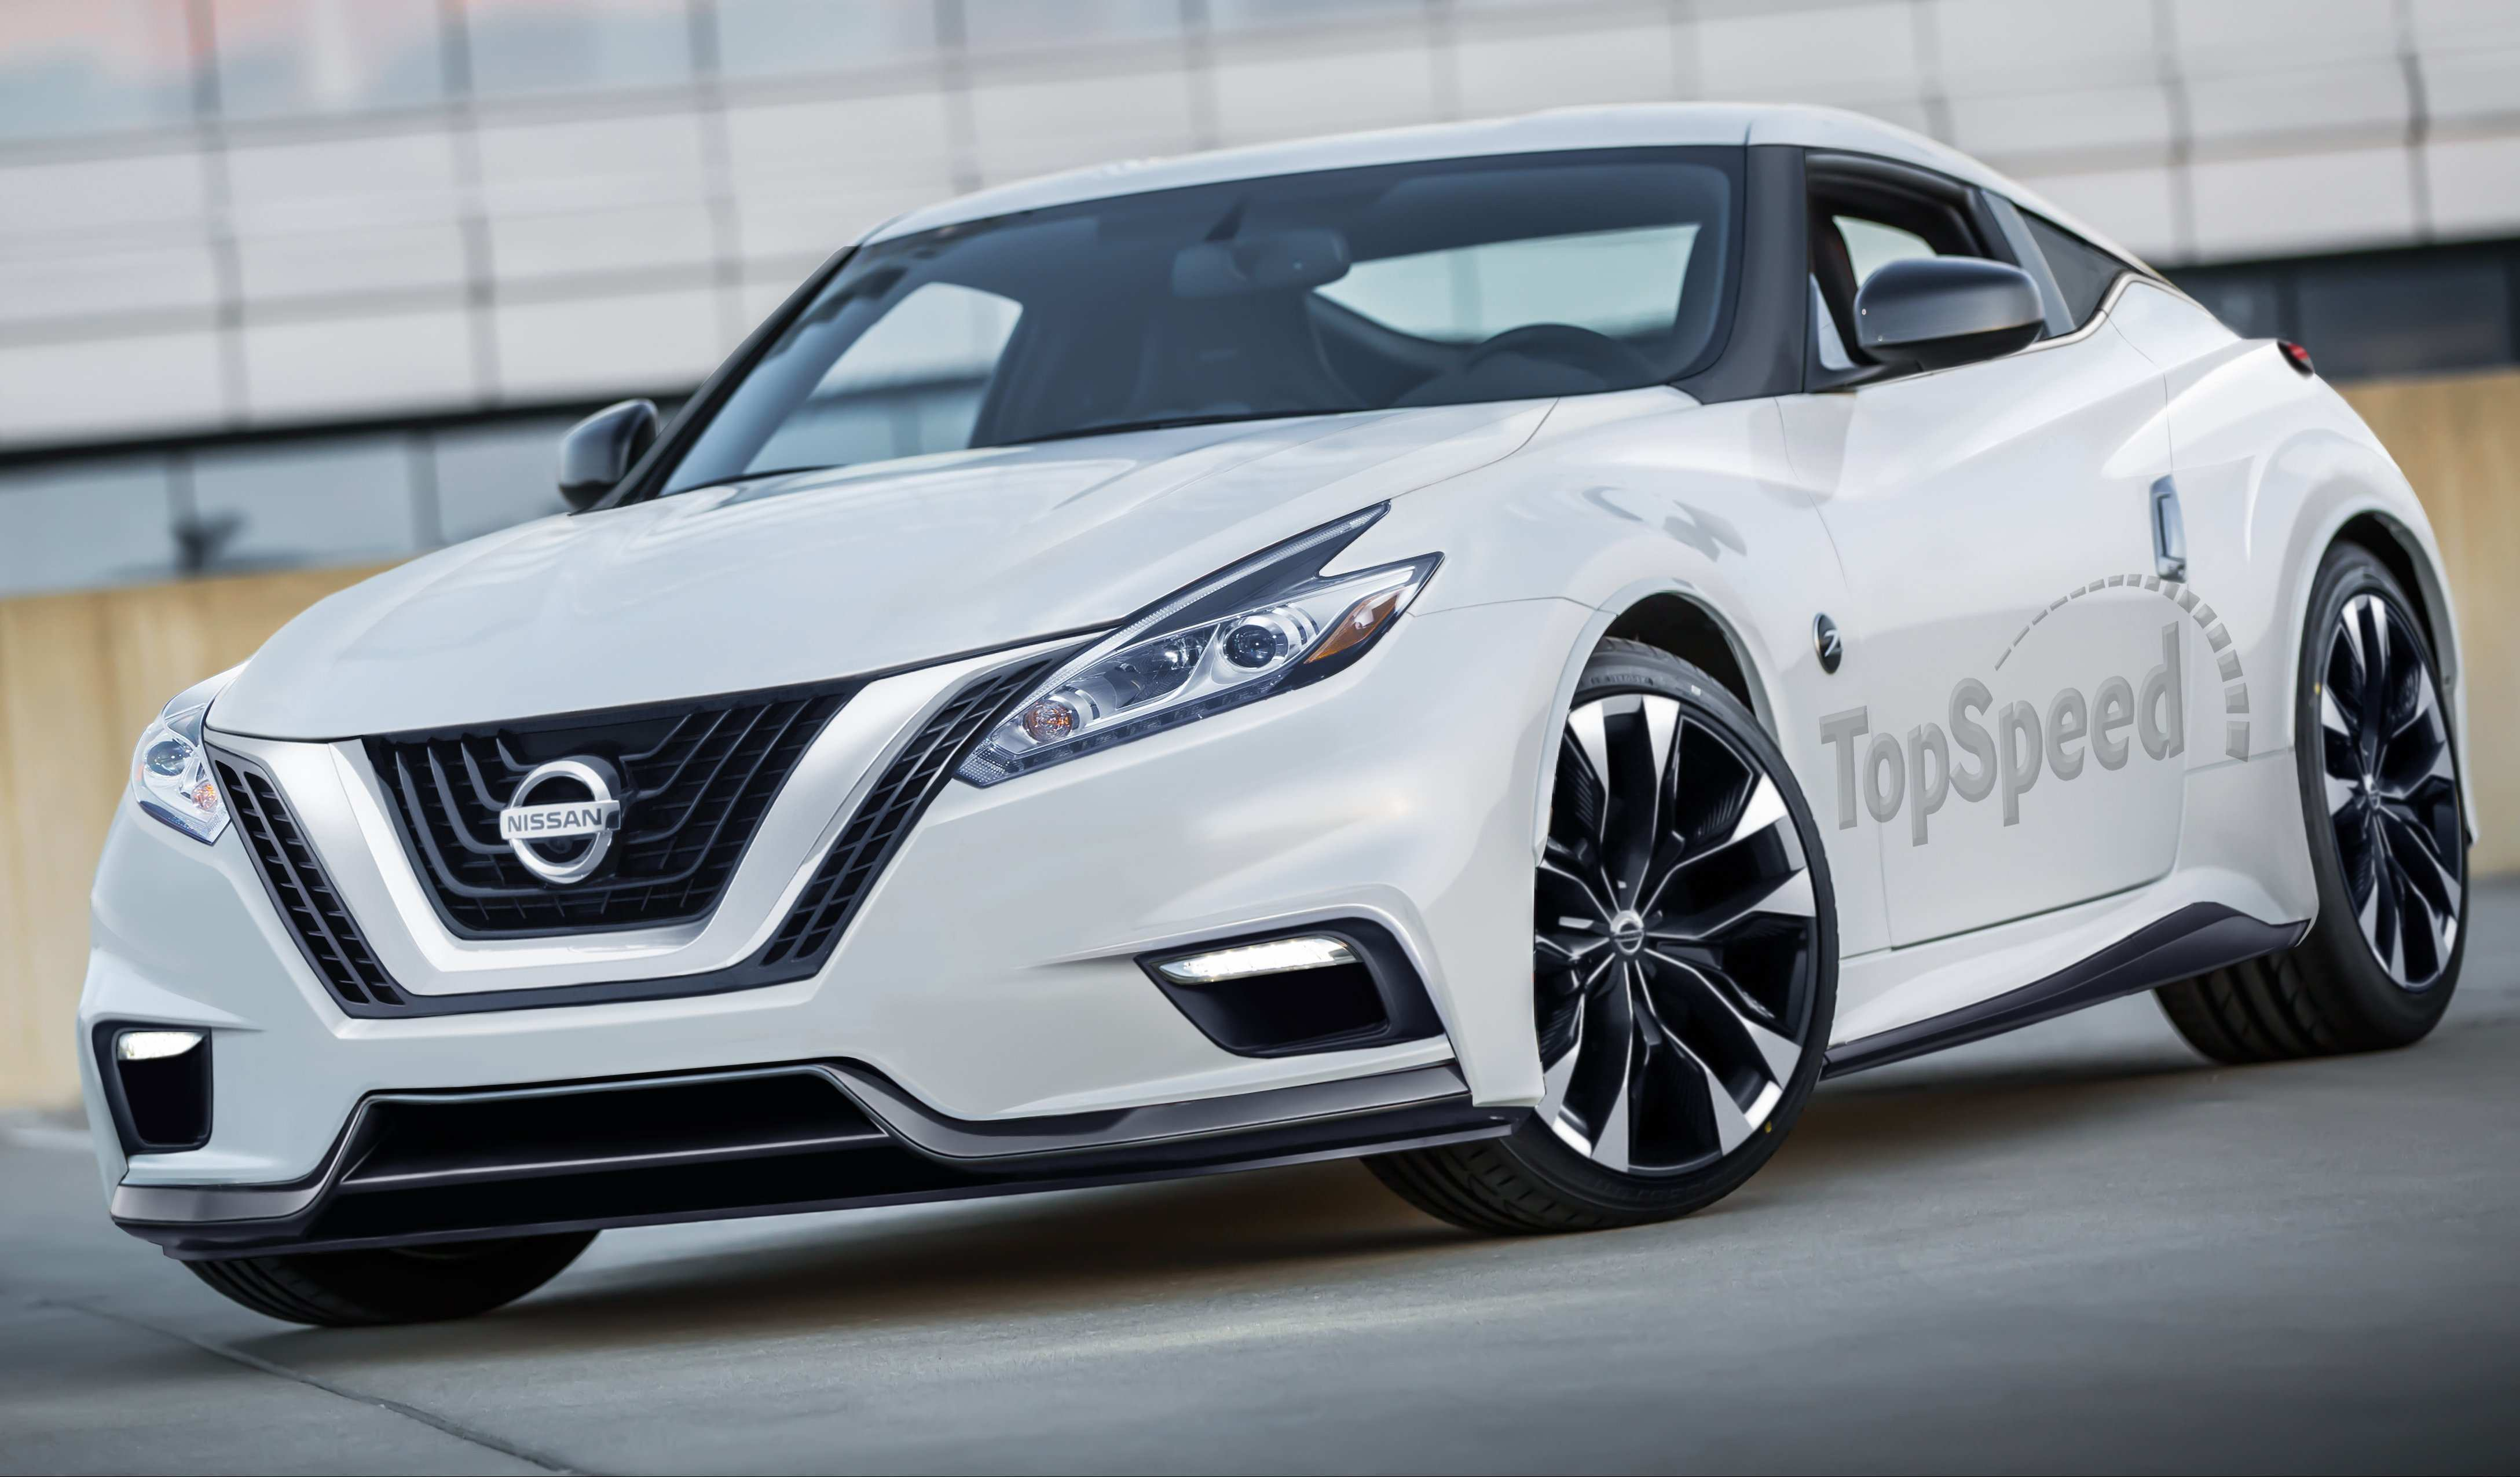 97 Best 2019 Nissan Z35 Price And Release Date